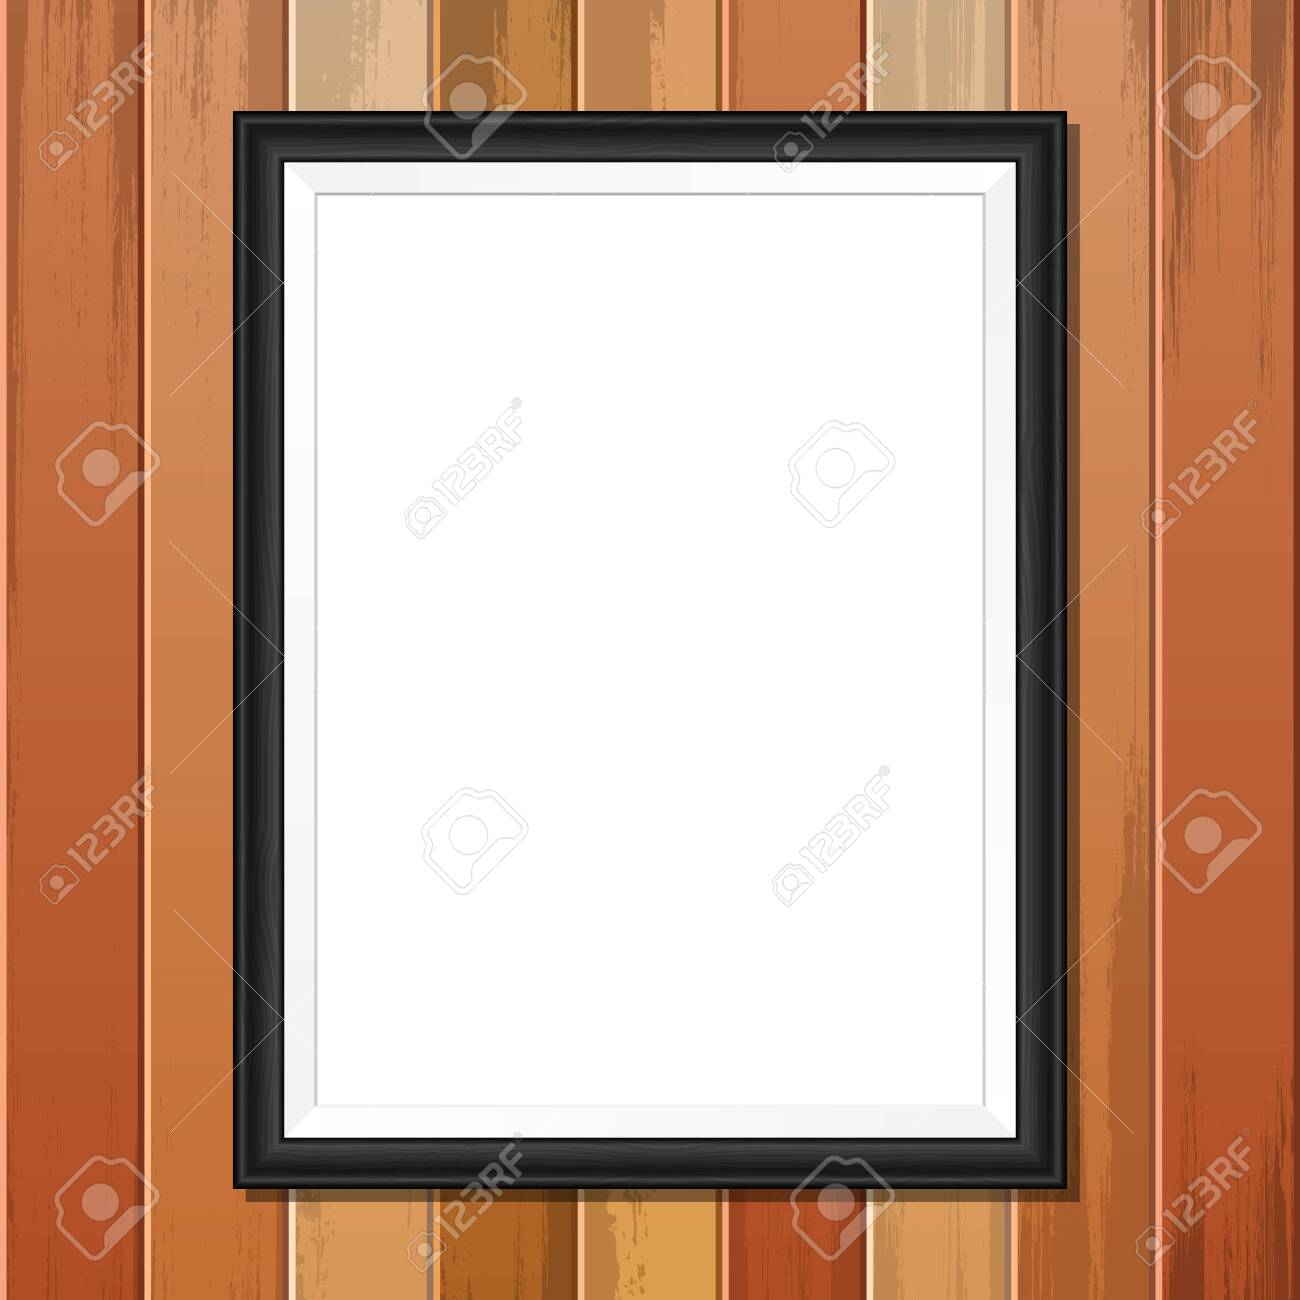 Photo frame vector design illustration isolated on wooden background - 151320317